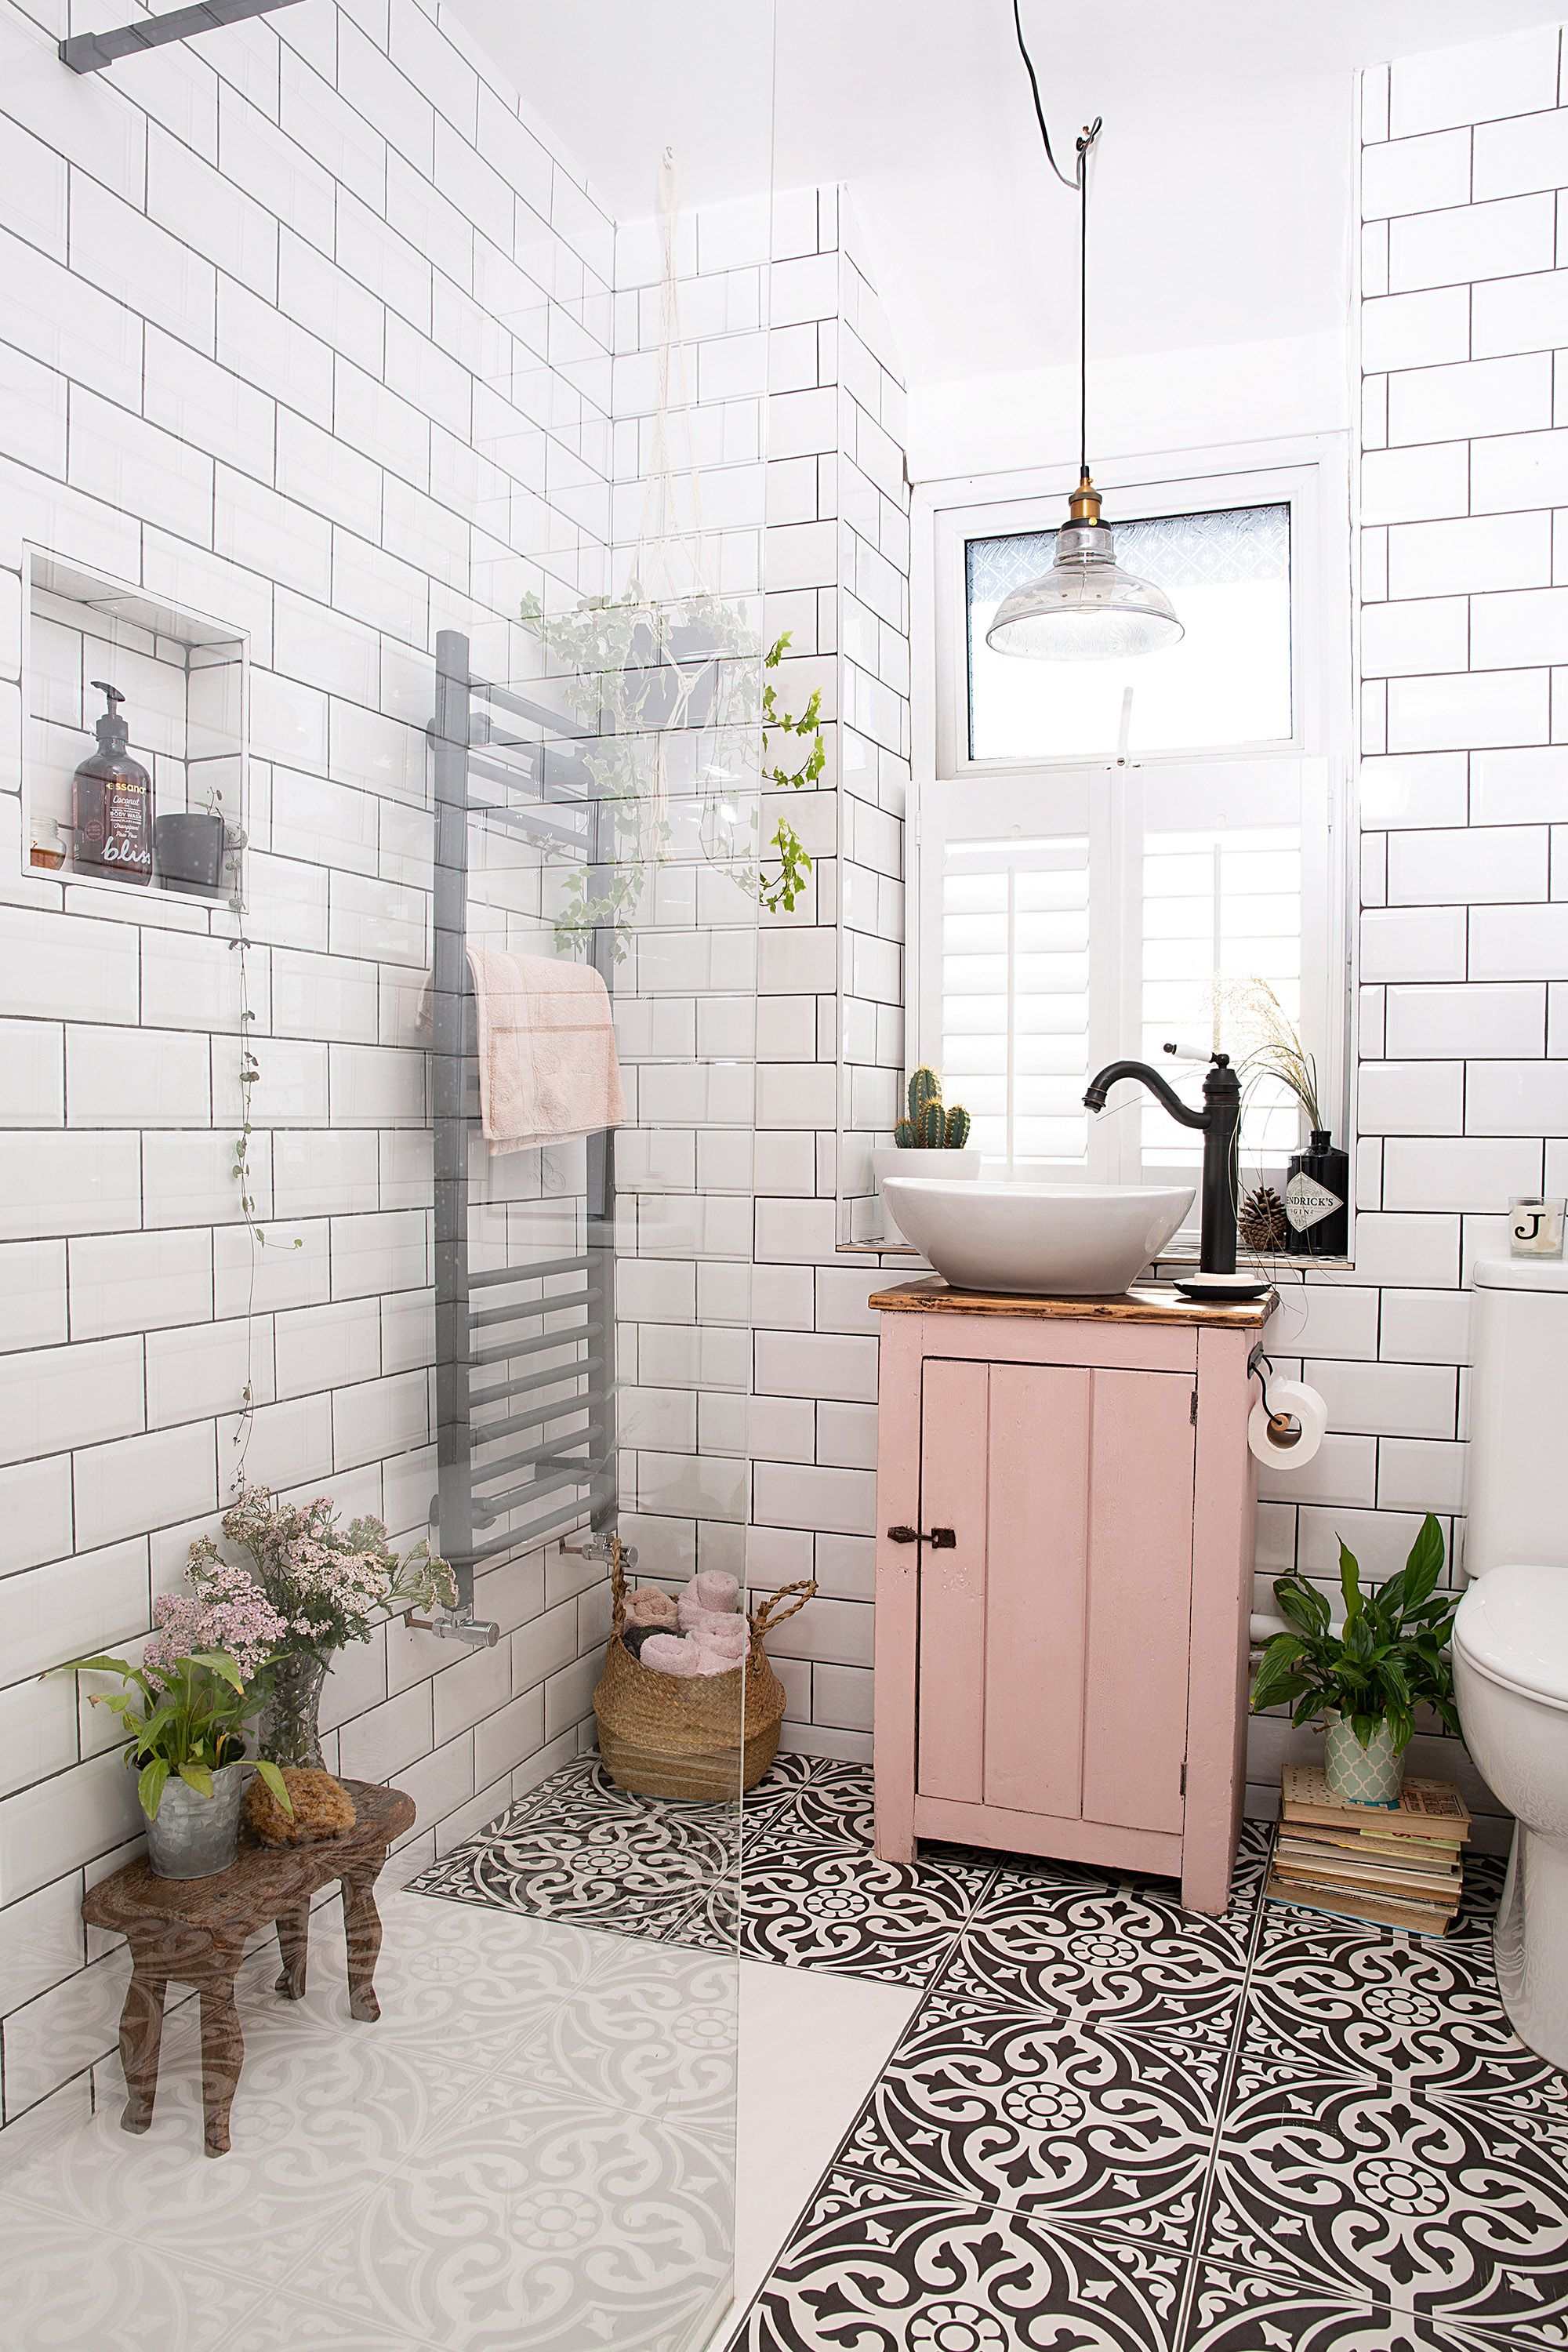 From The Famous Millenial Pink To Earthier More Romantic Hues These Pink Room Design Ideas Will Inspire You To Add This On Trend Colour To Your Home Bathroom Interior Design Home Decor Famous inspiration bathroom color